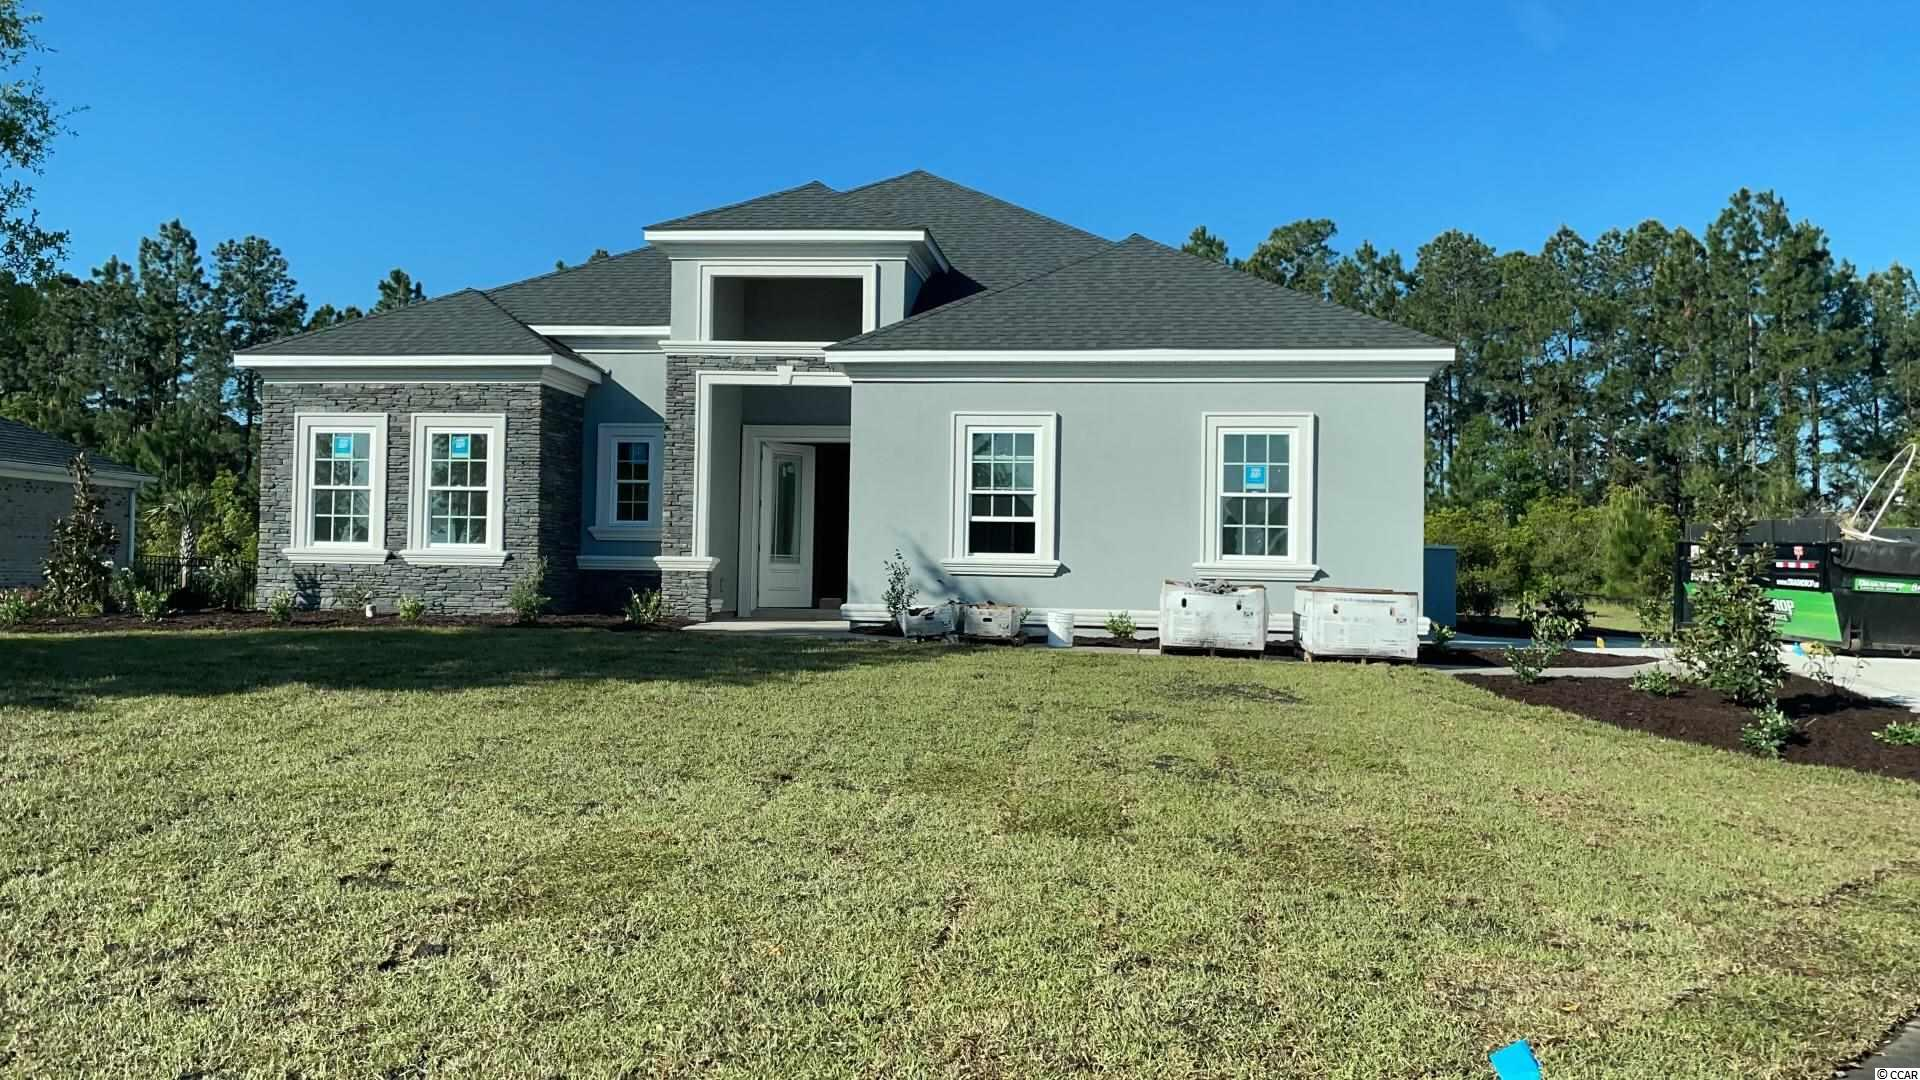 This beautiful new construction home is under construction and will be ready for a lucky buyer in June 2021! Located in the Wild Wing Plantation community that has a World class golf course and an amenities center that is amazing!. As you will enter this perfectly laid out open floorpan home with 4 bedrooms 3 bathrooms you will notice right away the upgrades and quality of work are above and beyond other larger builders in the area. This is a 100% custom home and it shows!. With LVP flooring throughout, stucco exterior, upgraded countertops, tankless gas water heater, soft close all wood cabinets, all showers are tile including a large shower and tub in the master bathroom, custom wood shelving in your oversized master walk in closet, large tray ceilings, appliances credit will be given, crown molding, upgraded lighting package and a outdoor built in natural gas BBQ area!. This is a large private lot with woods/water access to the large lake in Wild Wing. Community has two entrances/exits which makes for easy access to all shopping, restaurants, medical facilities, Coastal Carolina University and two Highways for a quick drive to anywhere on the beach!. Buyers if purchase in time will be given choices for certain finishes. Pictures are of a completed similar home in the community. Book your showing today as you will not be disappointed!